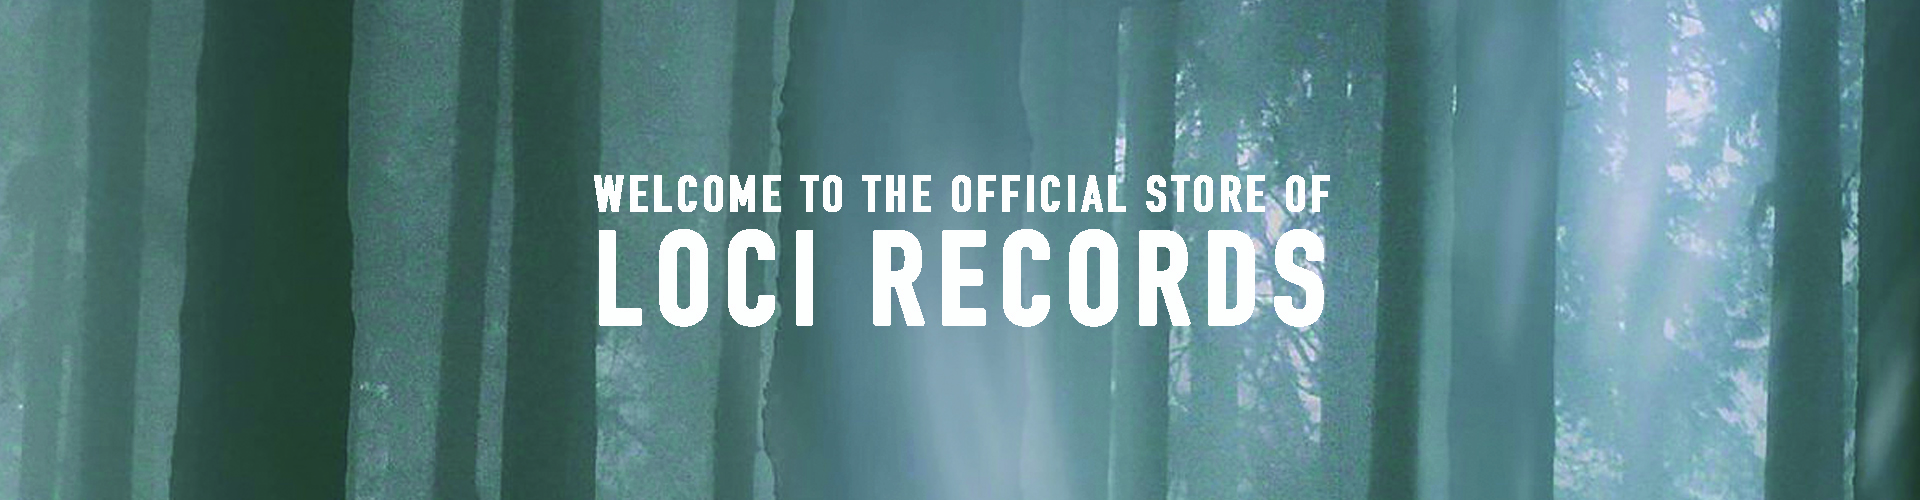 Welcome to the official store of Loci Records